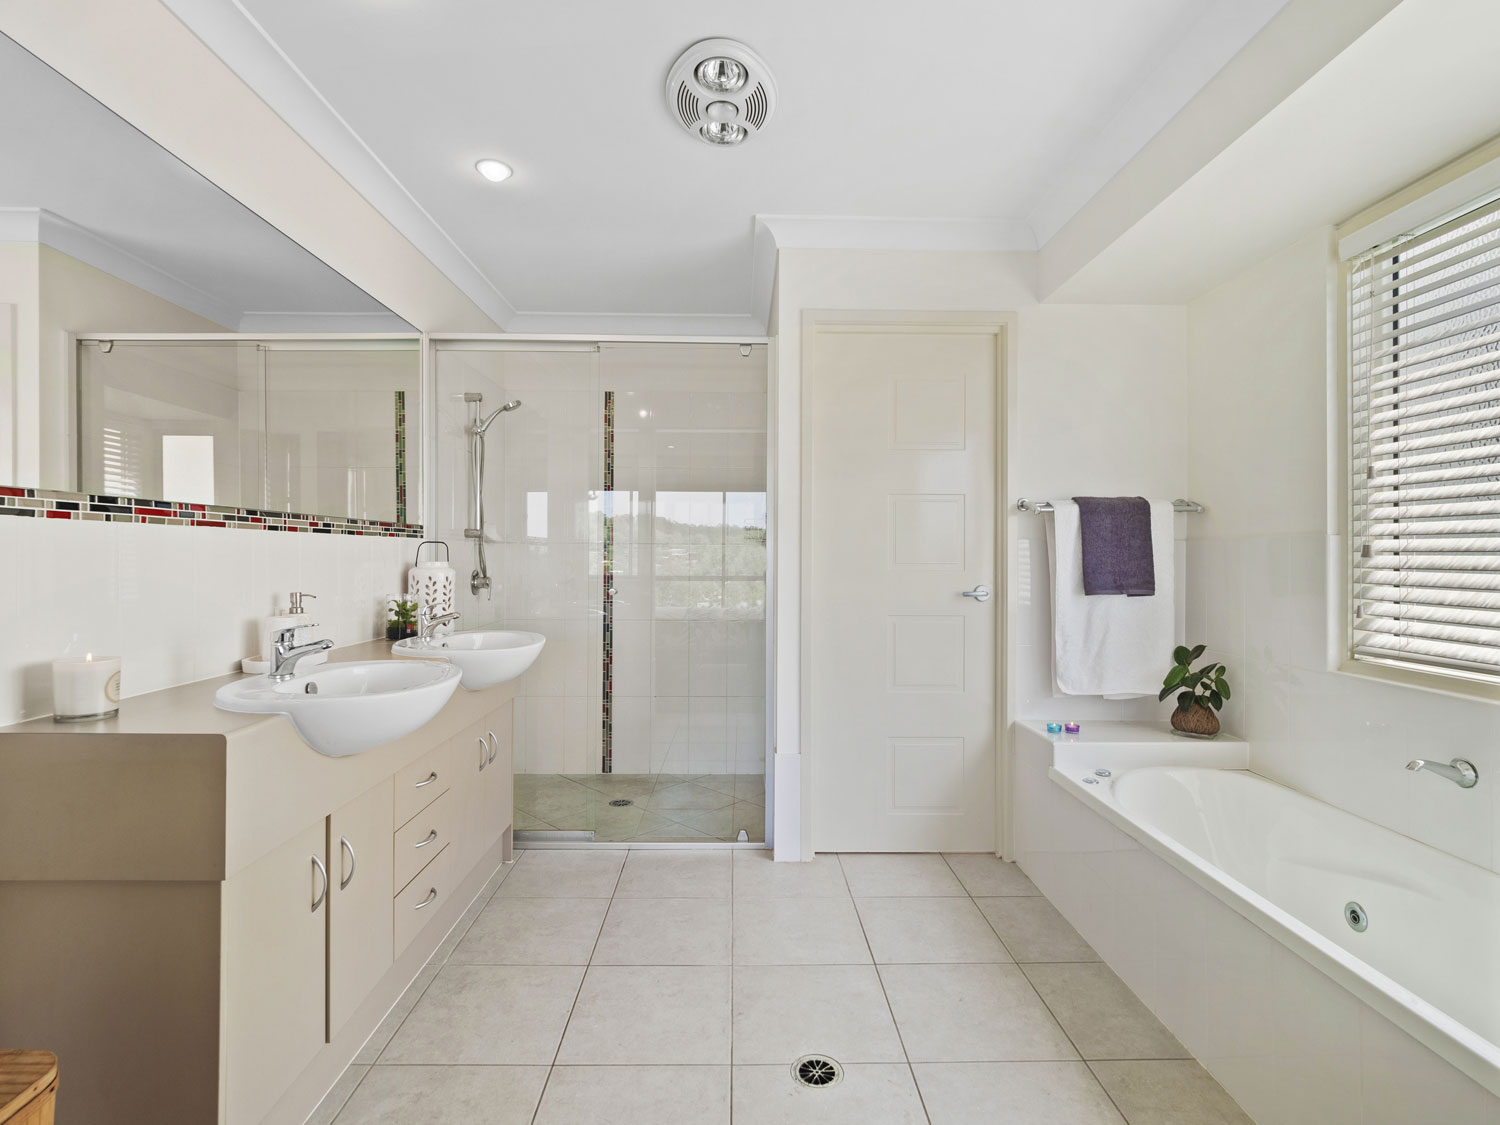 Capturing the ensuite of the home for sale at Mitchelton